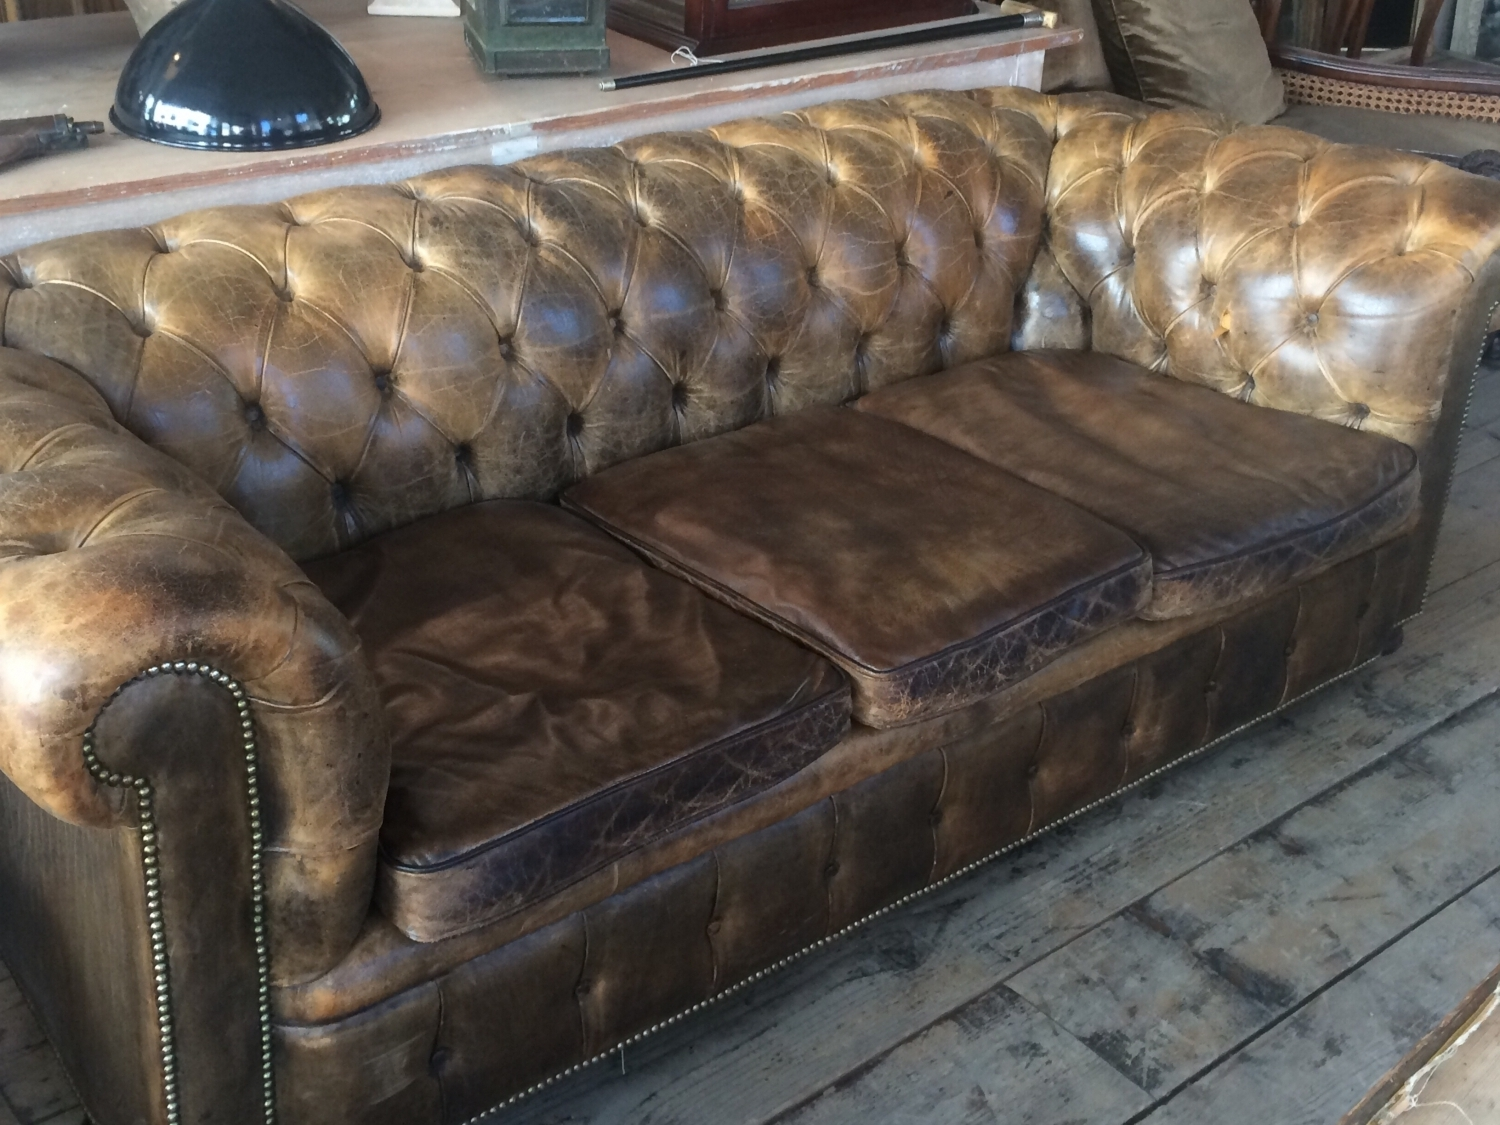 Vintage Chesterfield Sofa In Furniture Pertaining To Current Vintage Chesterfield Sofas (View 7 of 15)